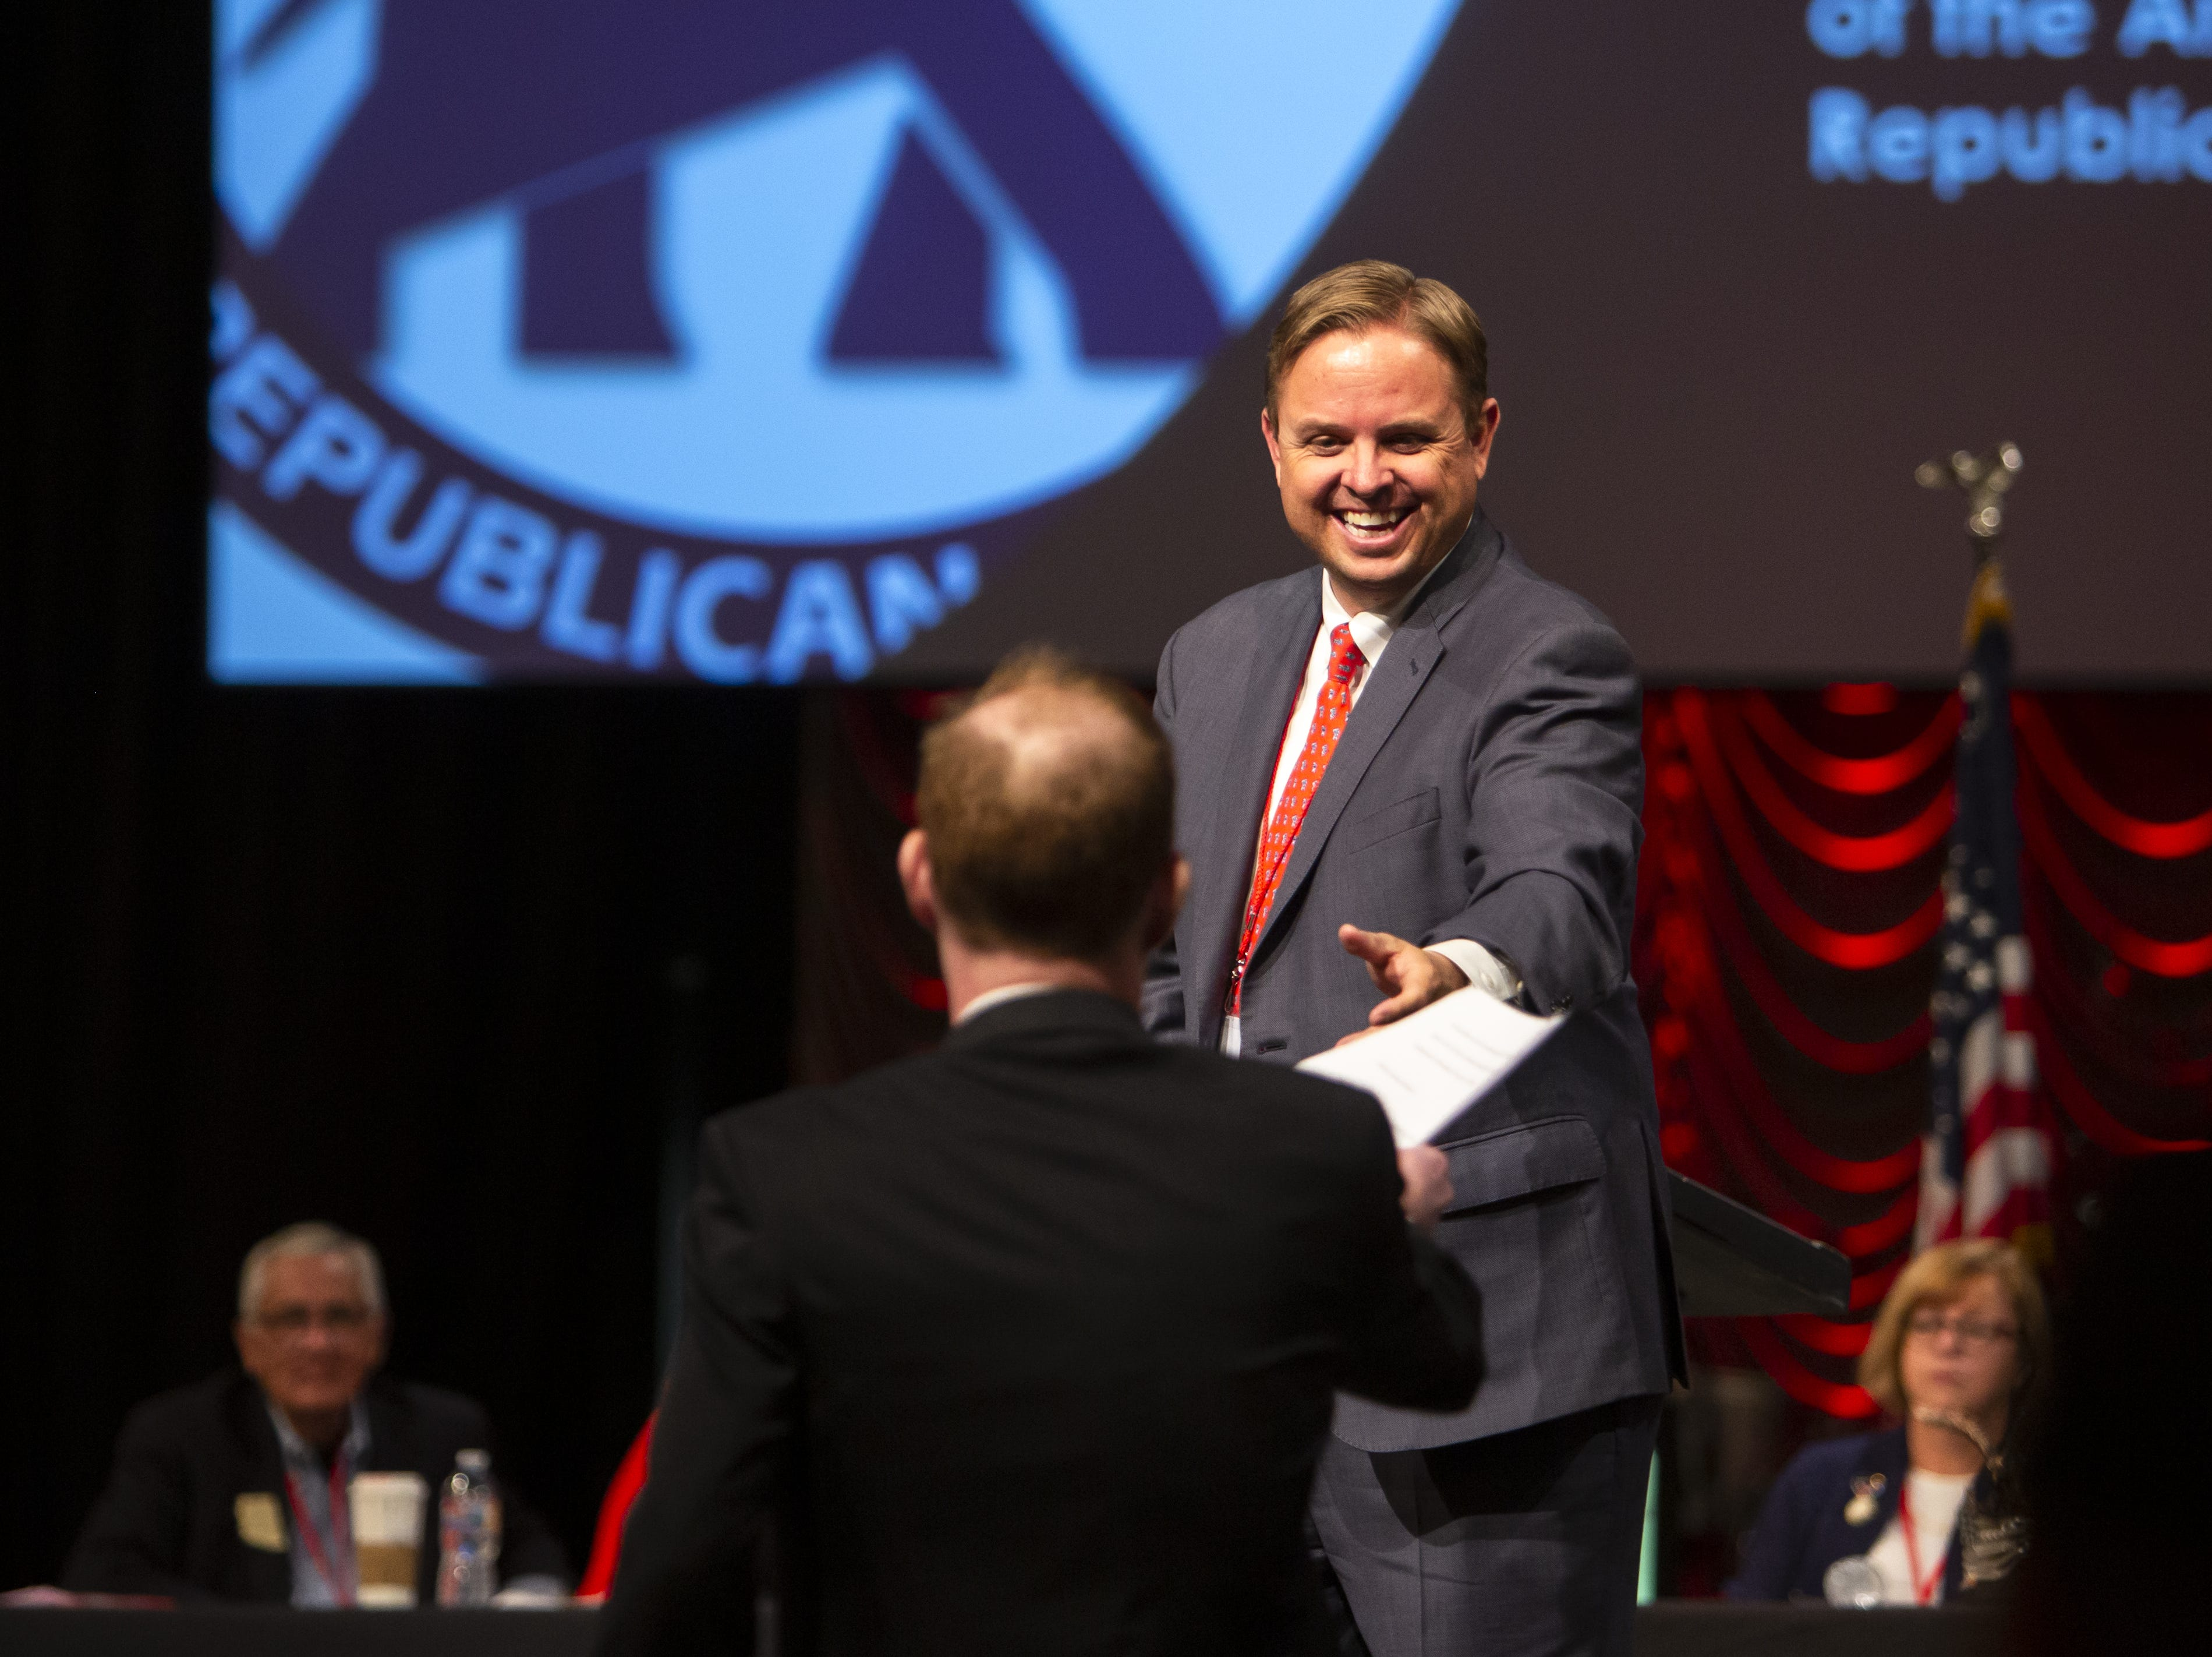 Lawyer Stephen Richer hands papers to Jonathan Lines during the Statutory Meeting of the State Committee of the Arizona Republican Party at Church for the Nations on Saturday, Jan. 26, 2019.